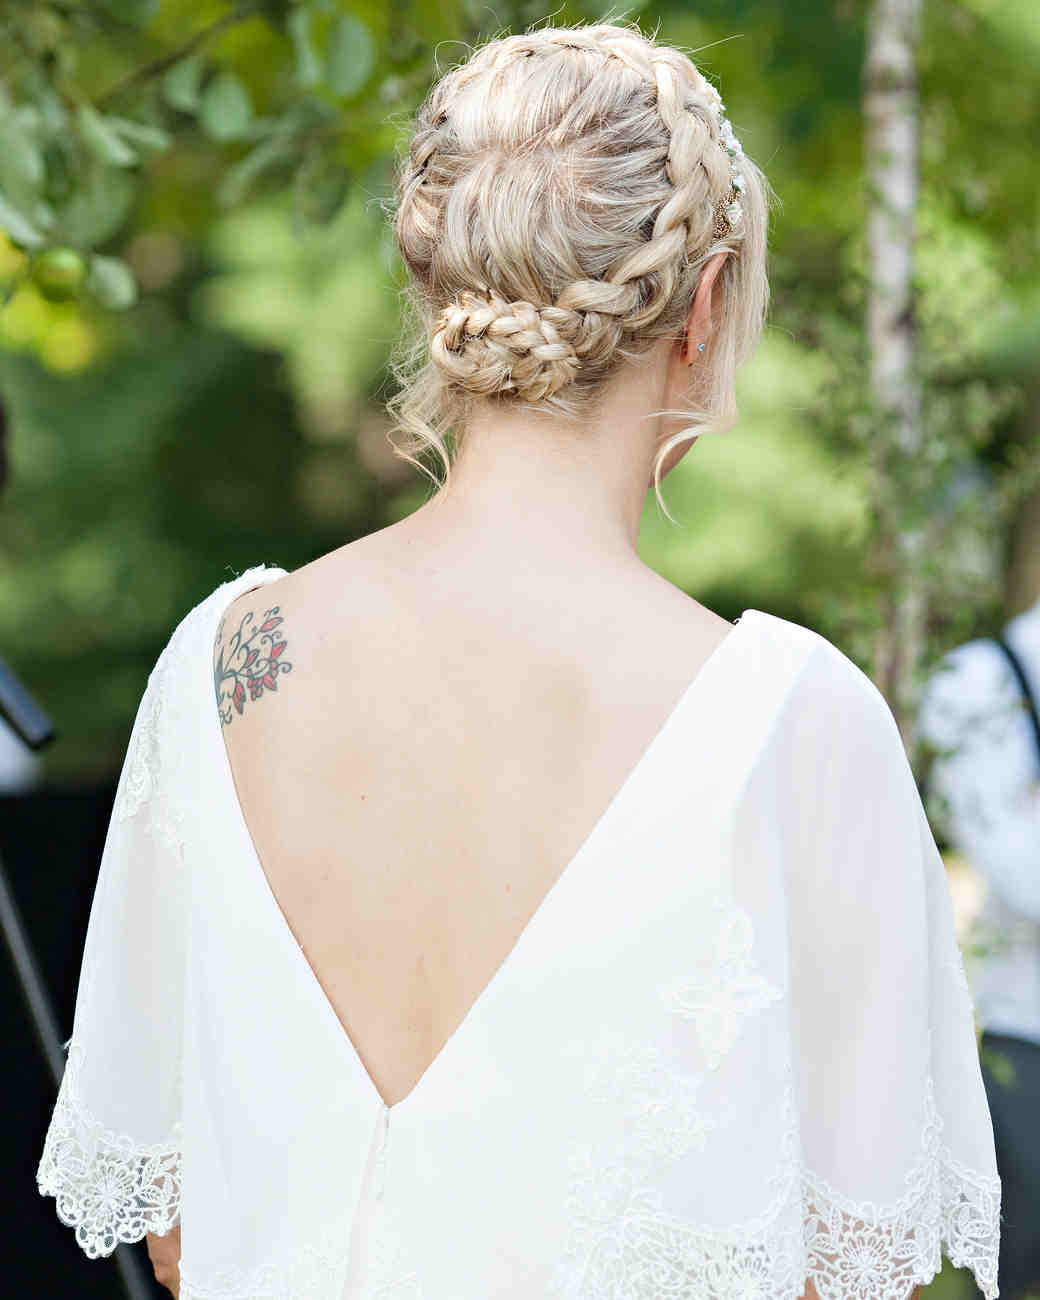 Wedding Hairstyle With Braids: 29 Cool Wedding Hairstyles For The Modern Bride